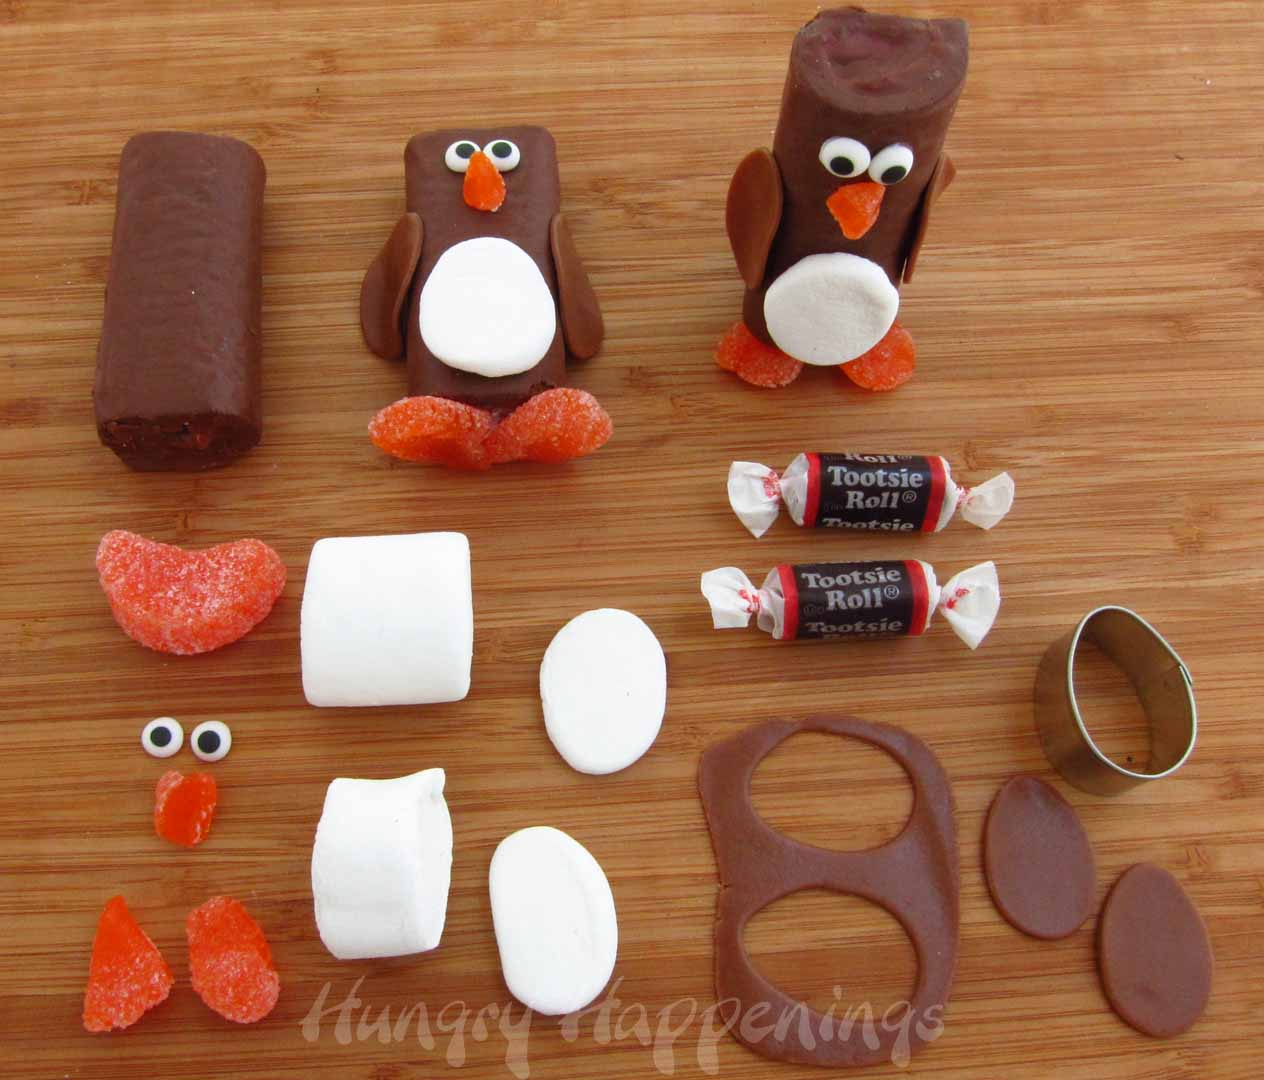 edible crafts holiday crafts for kids christmas craft ideas